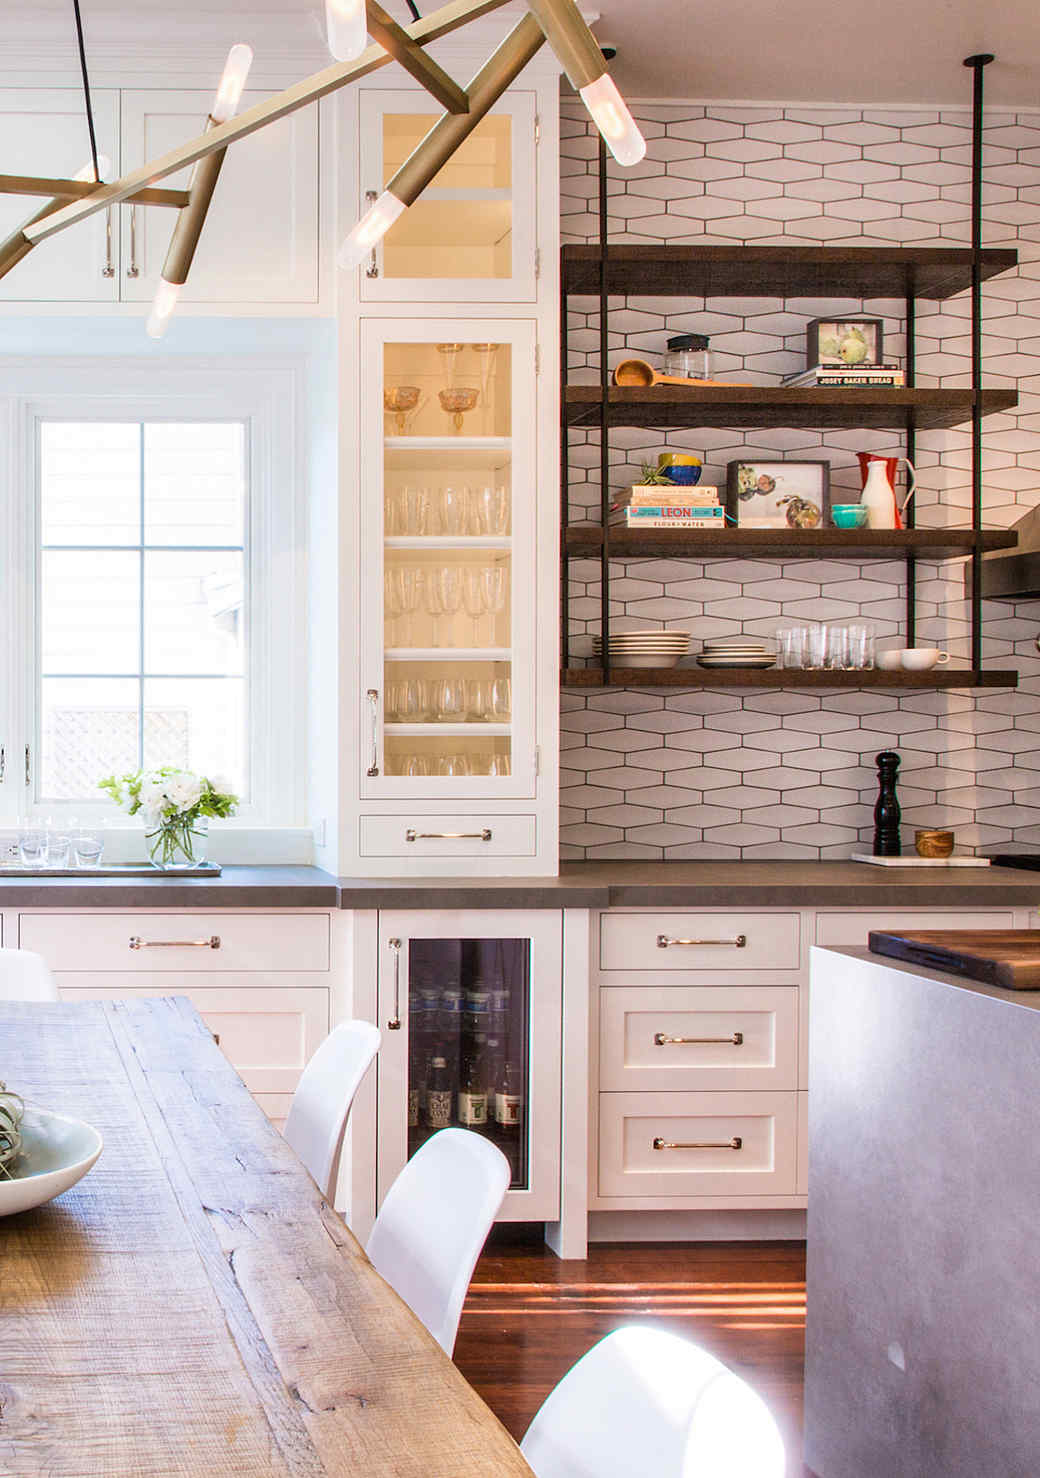 Cool Kitchen Decor Ideas for Growing Families